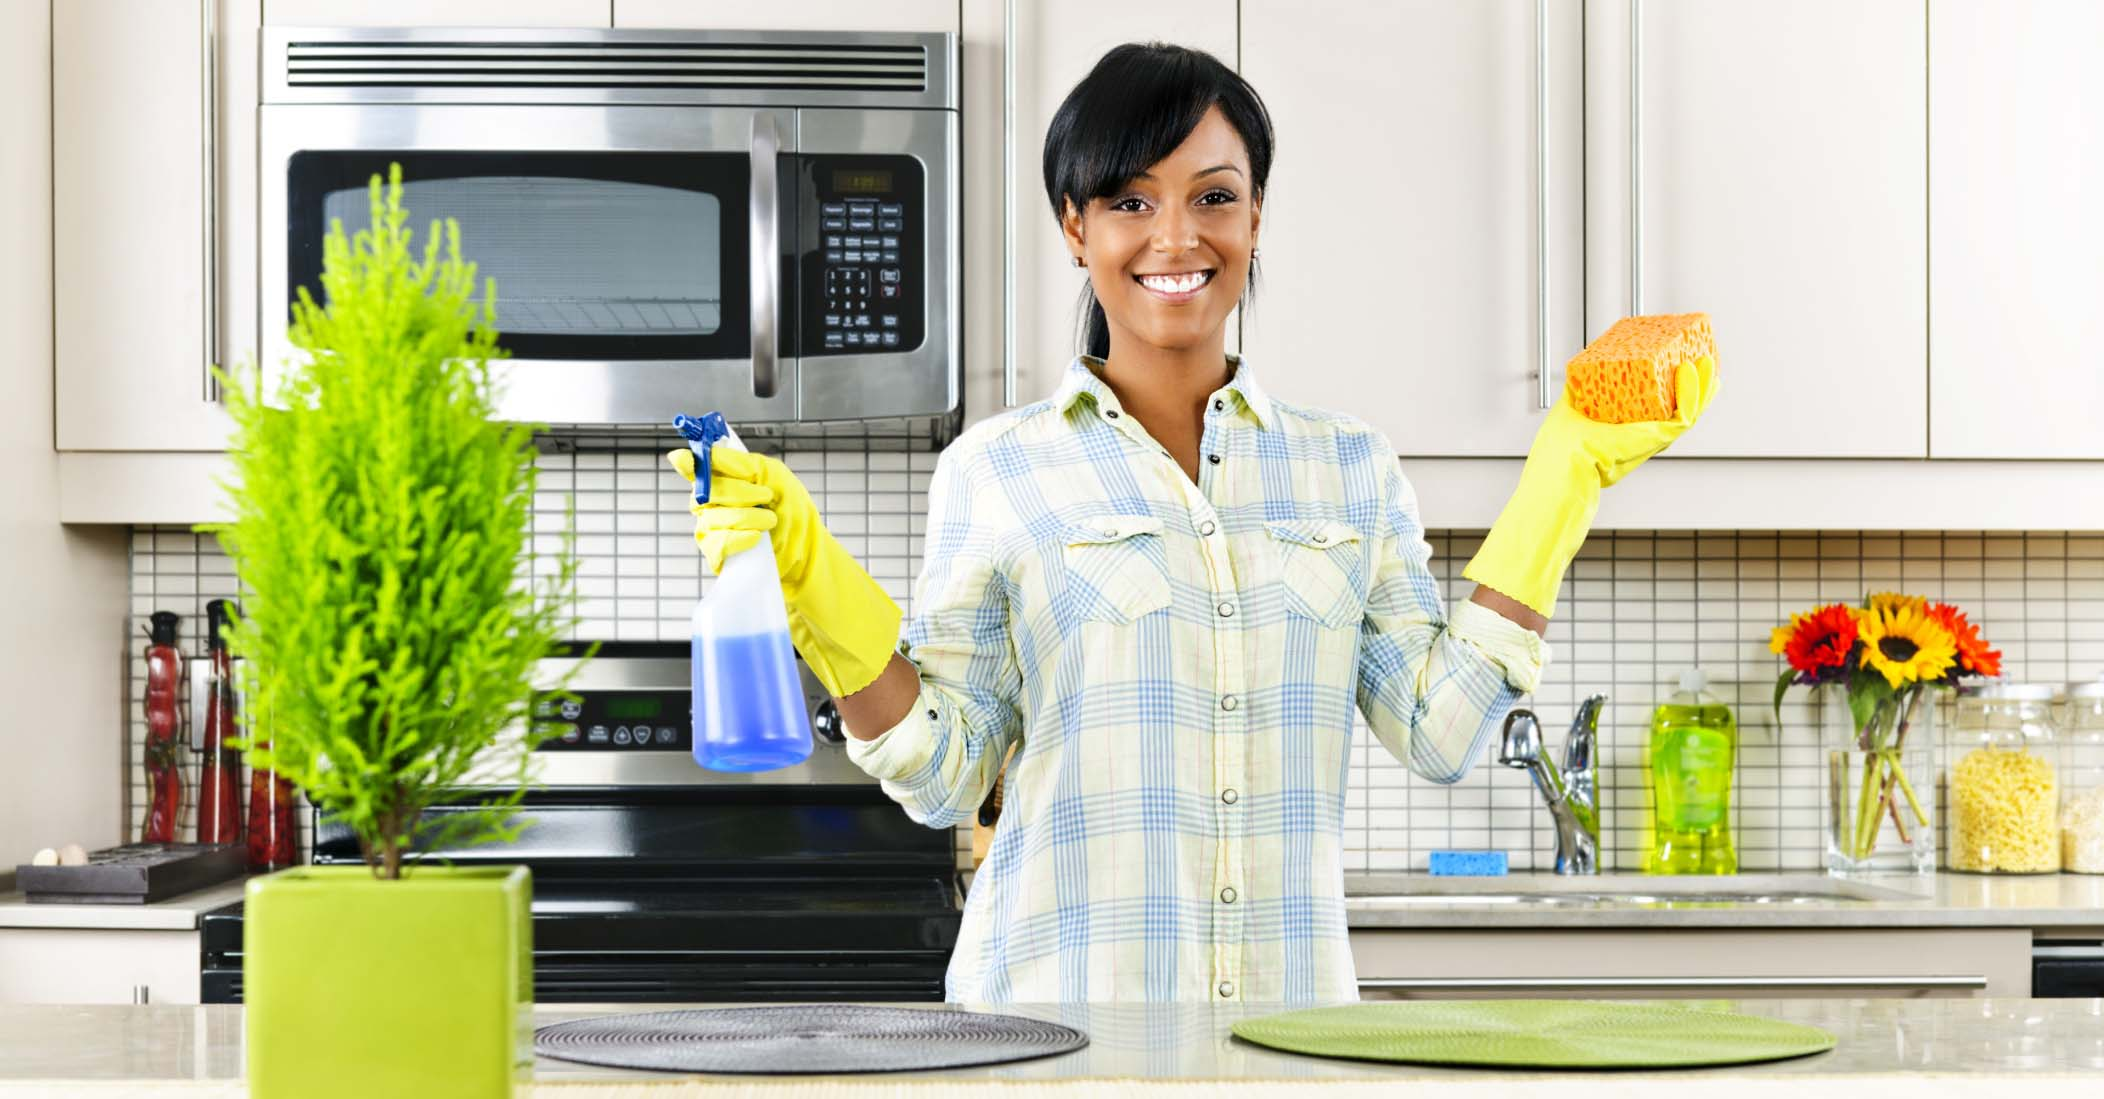 Kitchen Cleaning Services in Nigeria